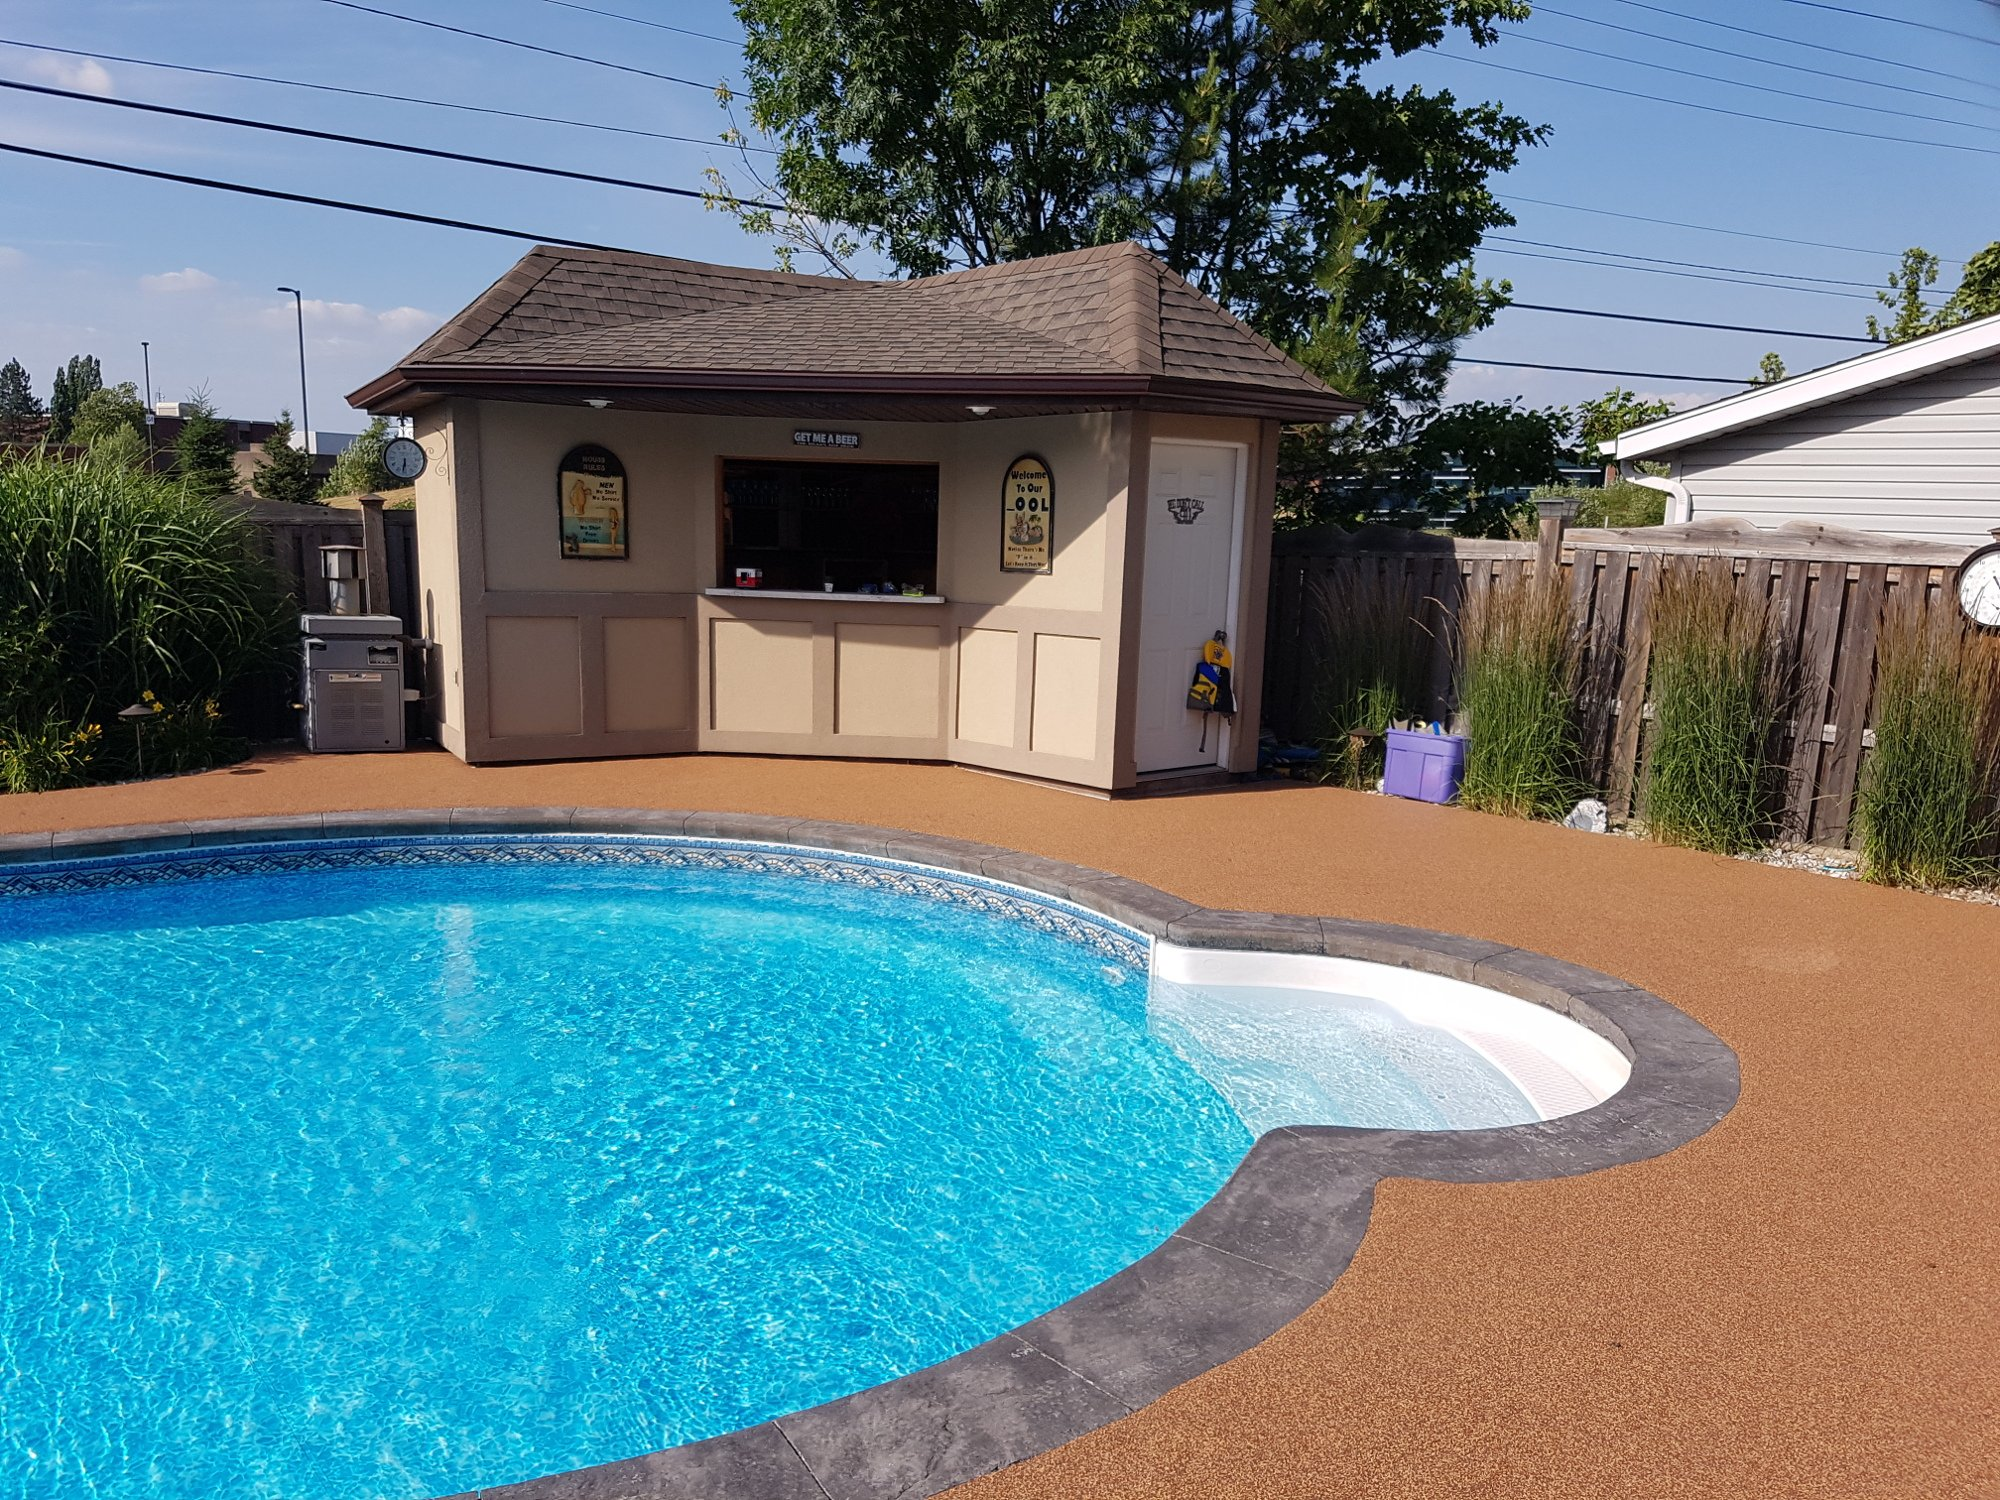 Rubber Surfacing for Pool Decks